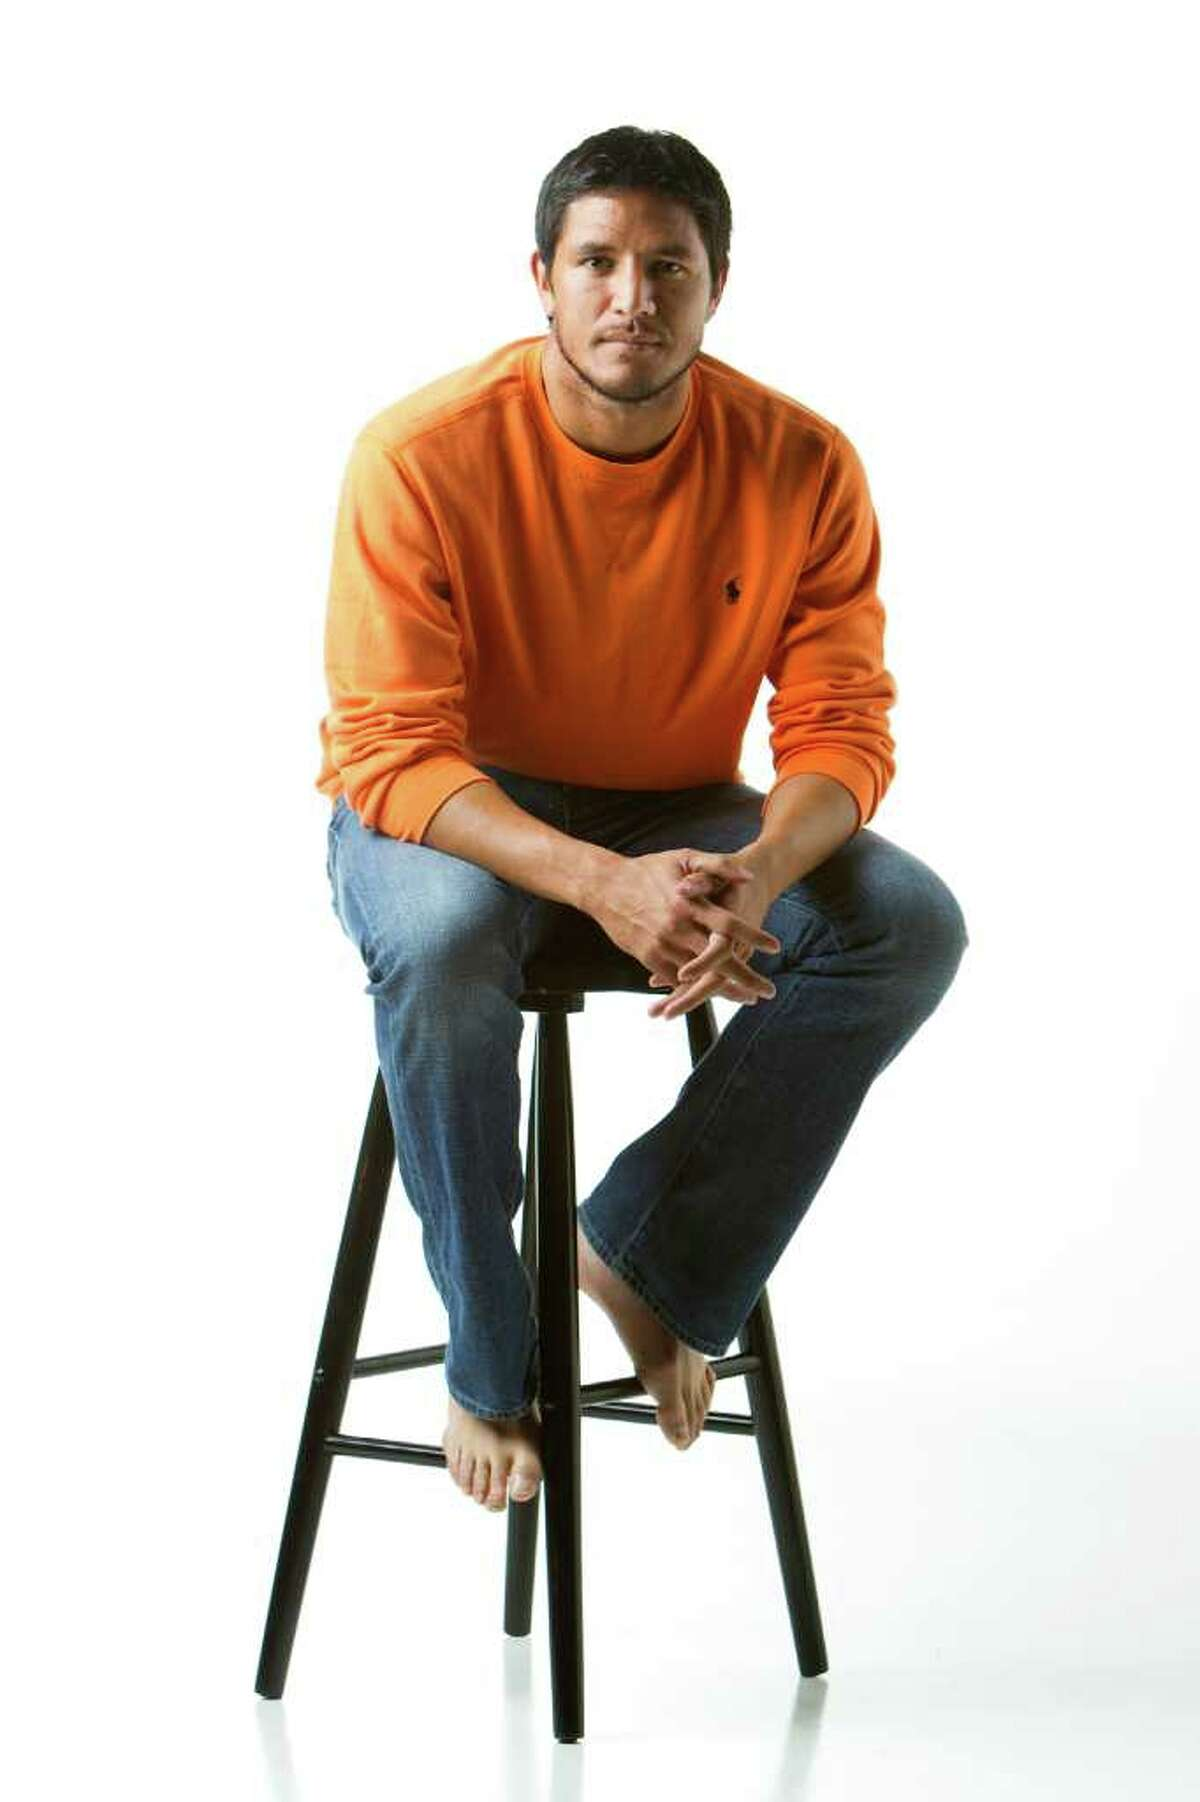 Houston Dynamo forward Brian Ching poses for a portrait in the Chronicle Studio Tuesday, Nov. 8, 2011, in Houston. Ching is shown wearing Polo by RL orange top, $125; Neiman Marcus. ( Brett Coomer / Houston Chronicle )